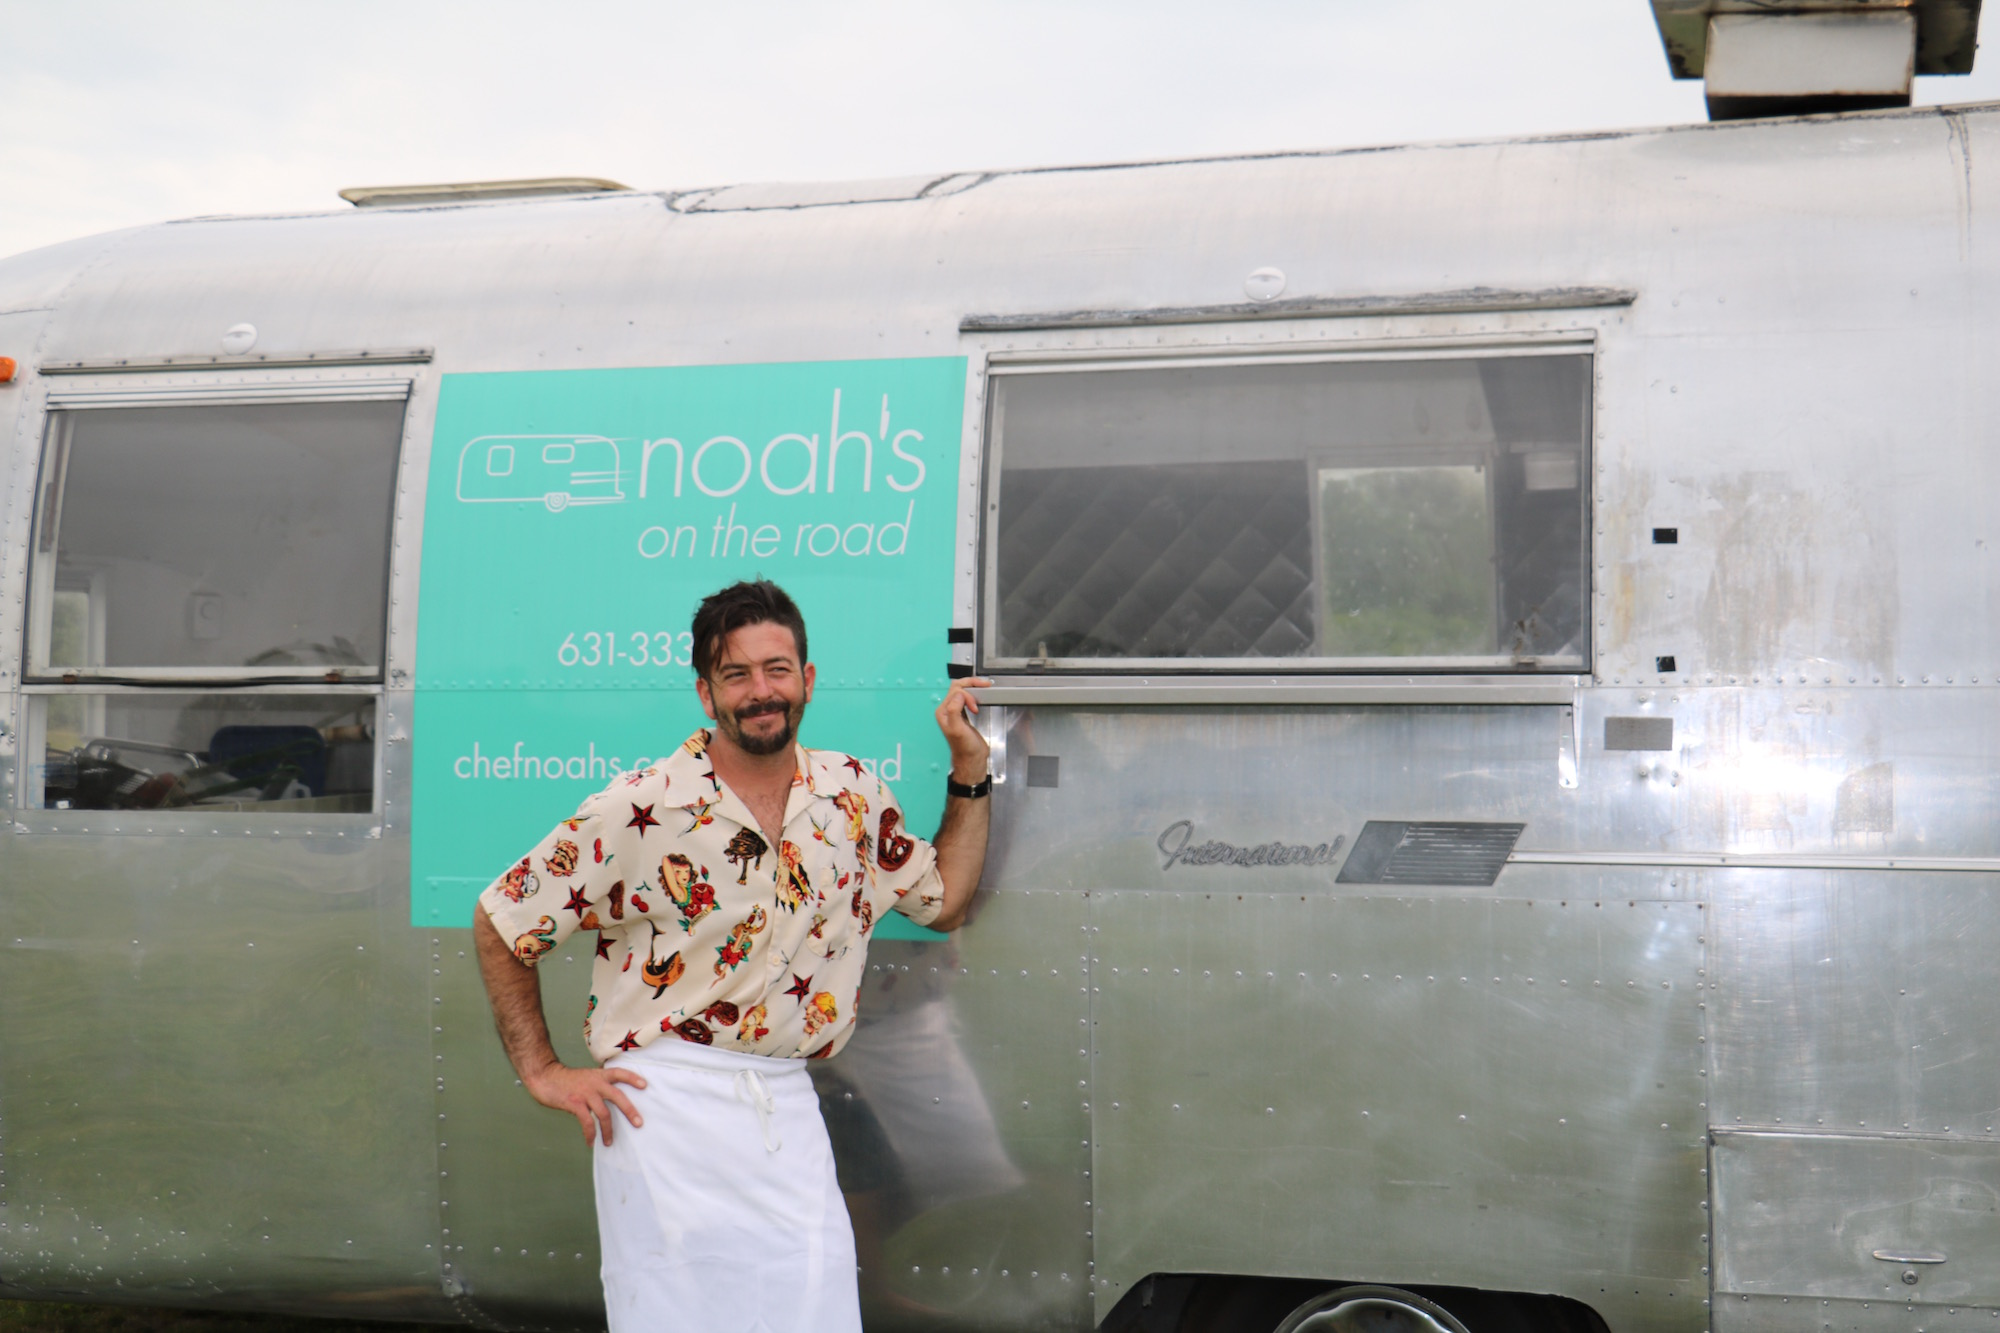 Stop at noah's food truck during your summer winery excursions. image: mary demaio